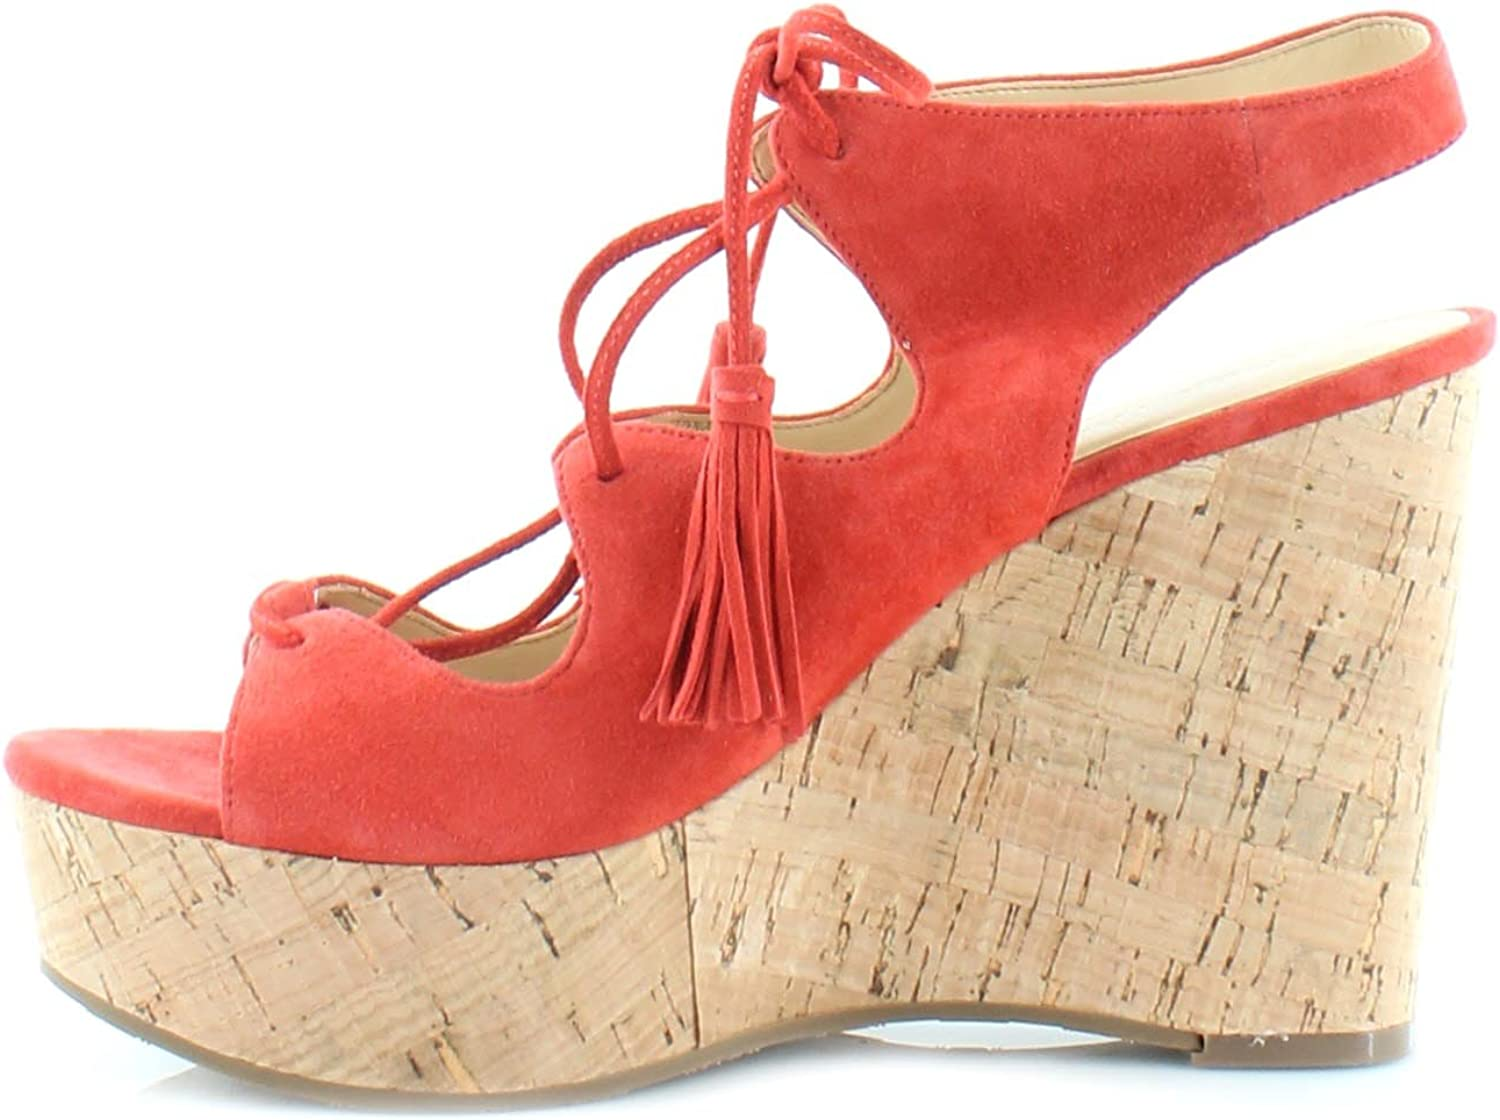 Ivanka Trump Zenia Women/'s Sandals Medium Red